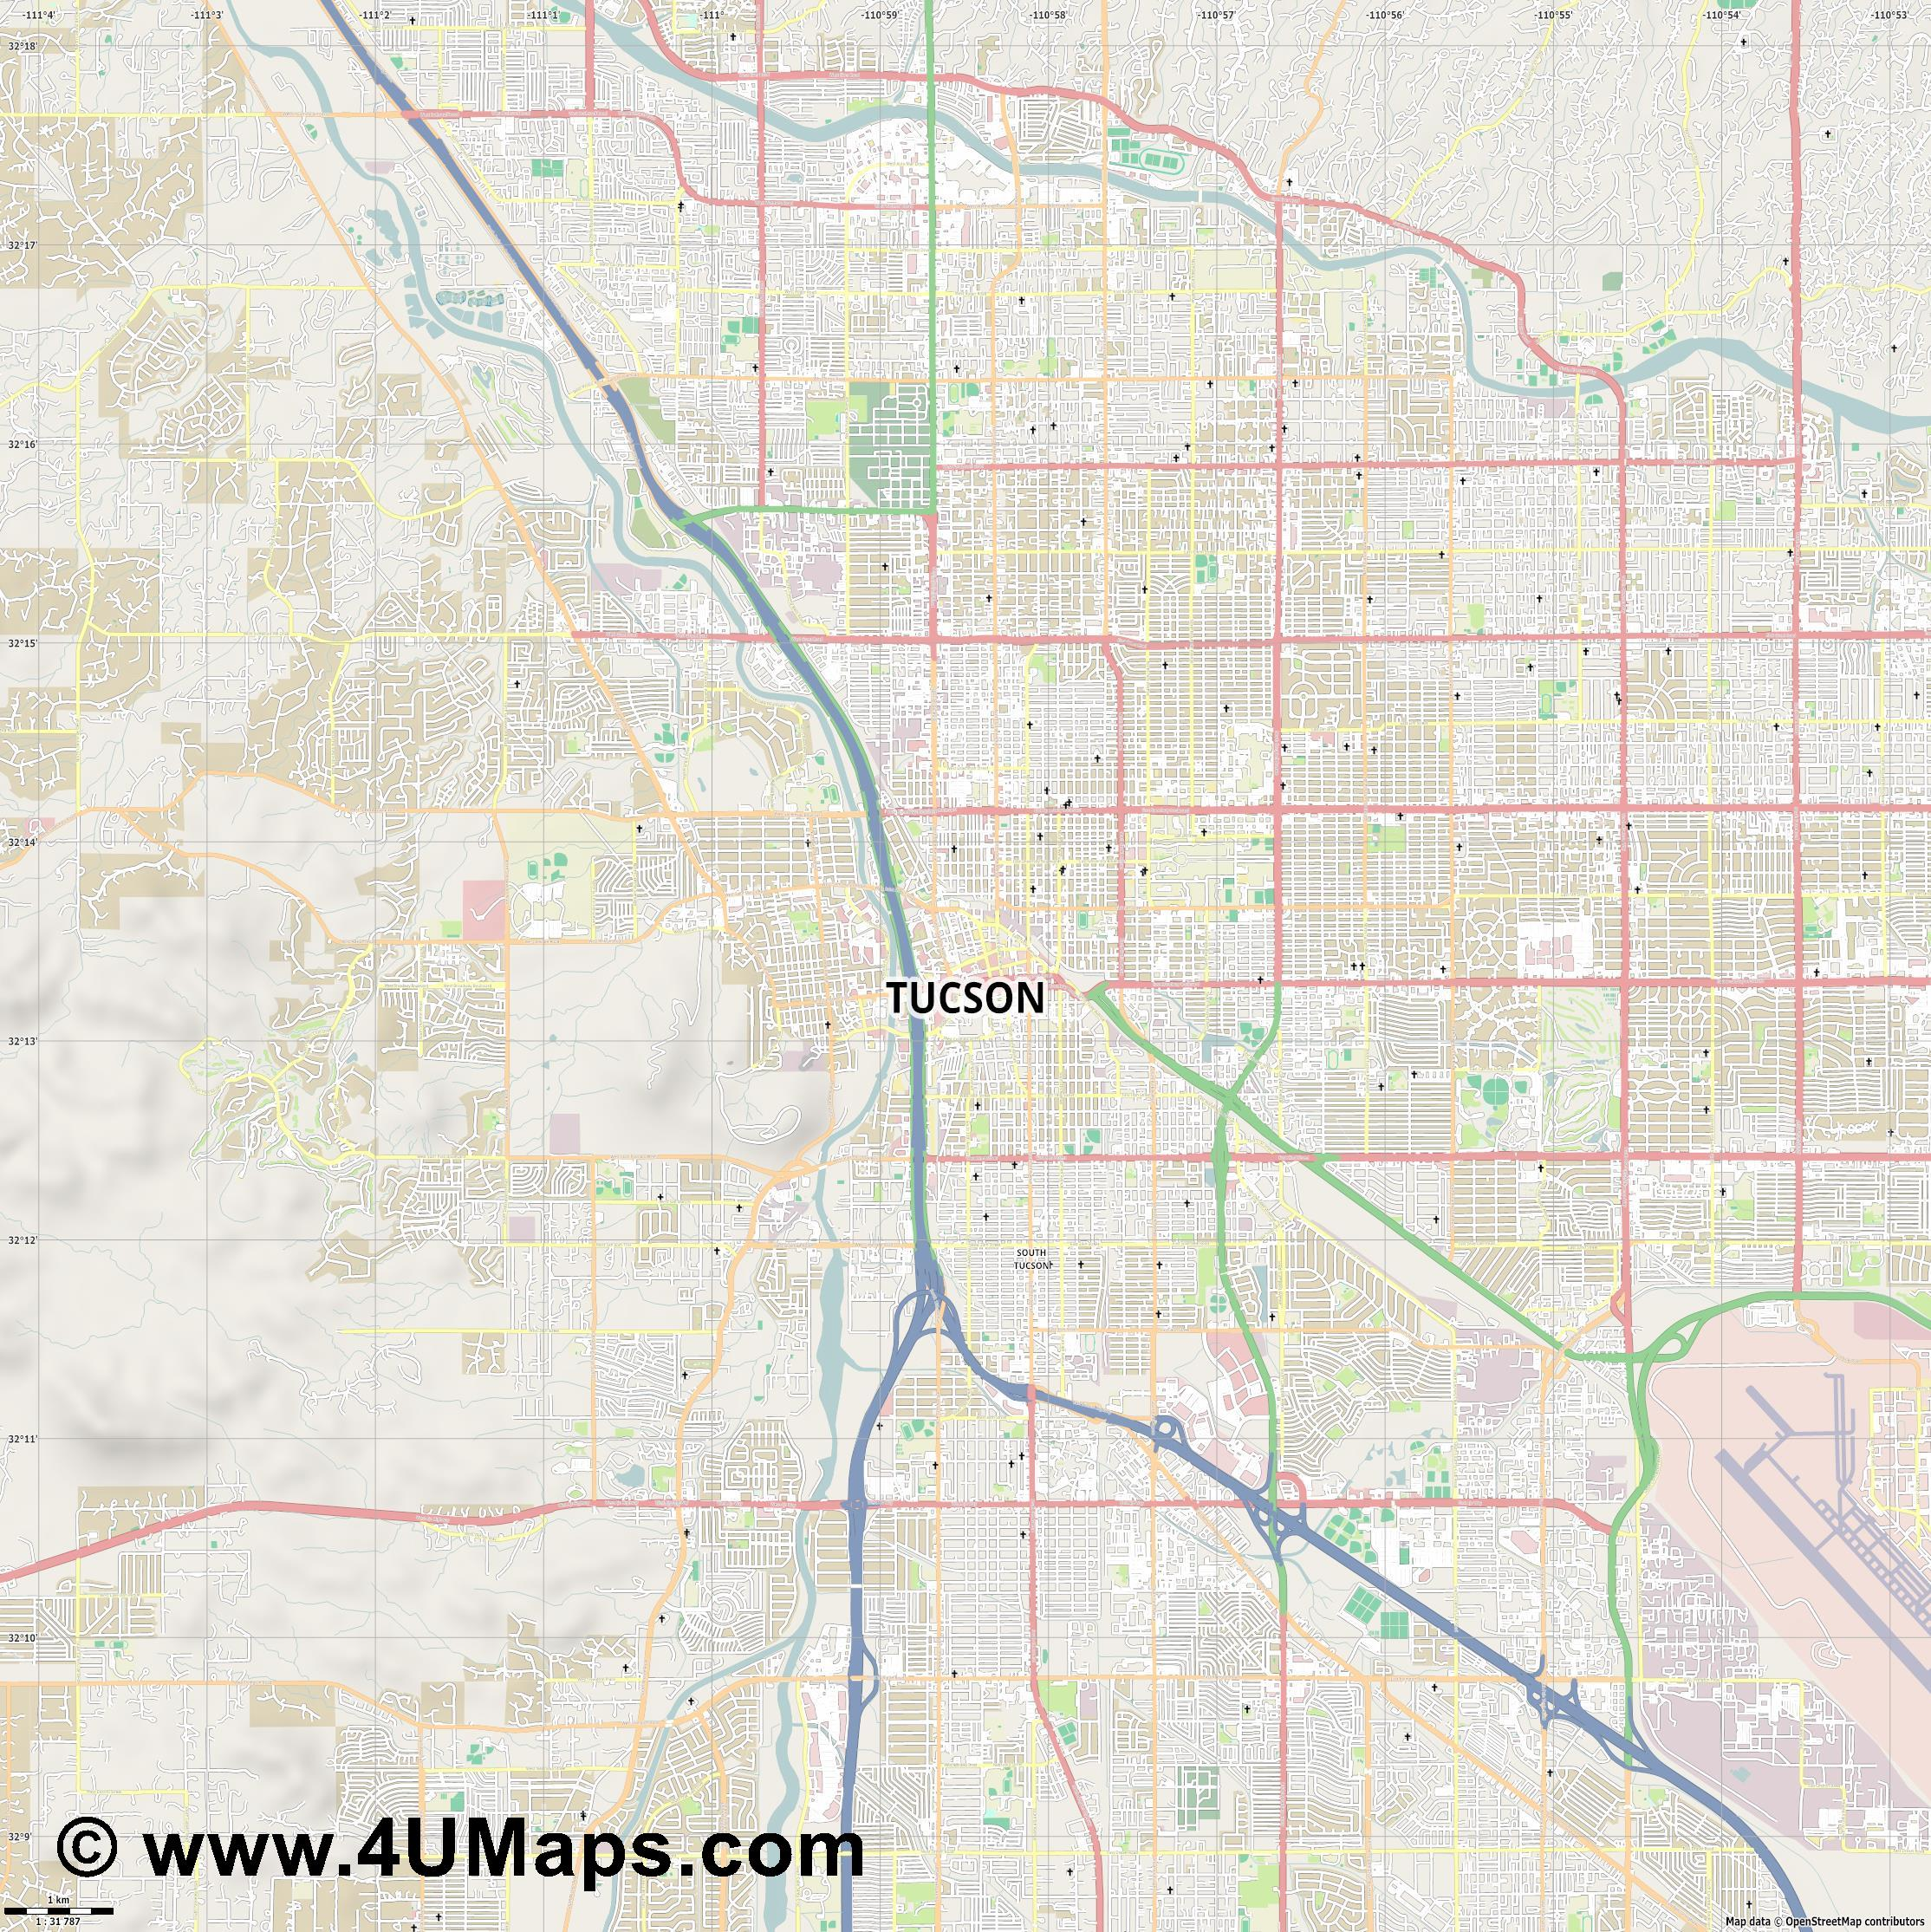 Tucson  jpg high detail, large area preview vector city map